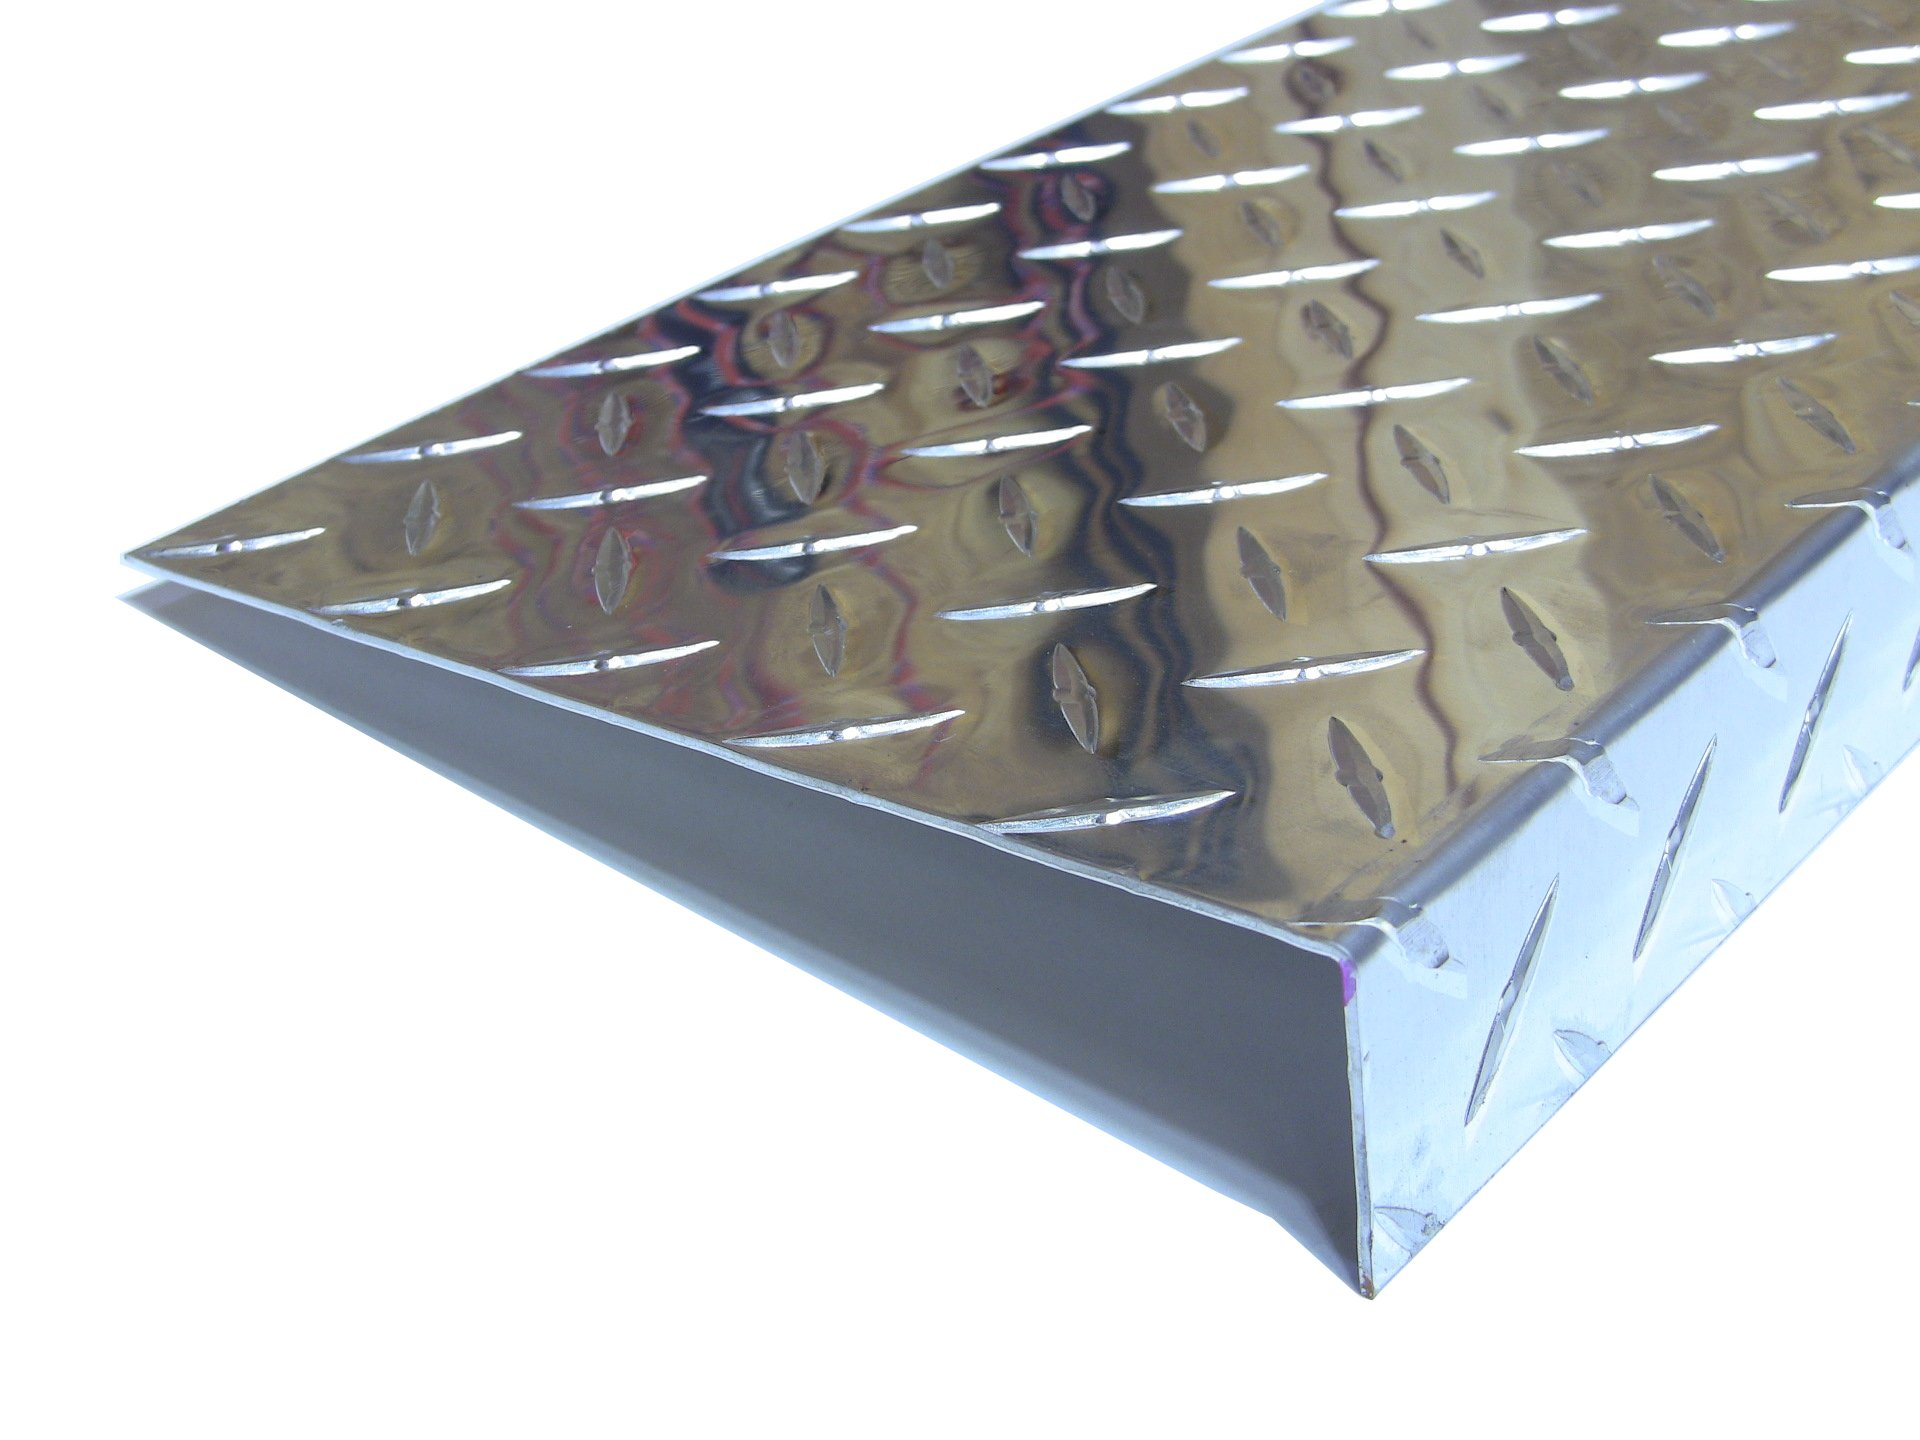 Aluminum Diamond Plate Door Threshold .062 x 1.5 x 7.5 x 36 in. w/out screws and holes | (1/16 x 1-1/2 x 7-1/2 x 36 in.) UAAC